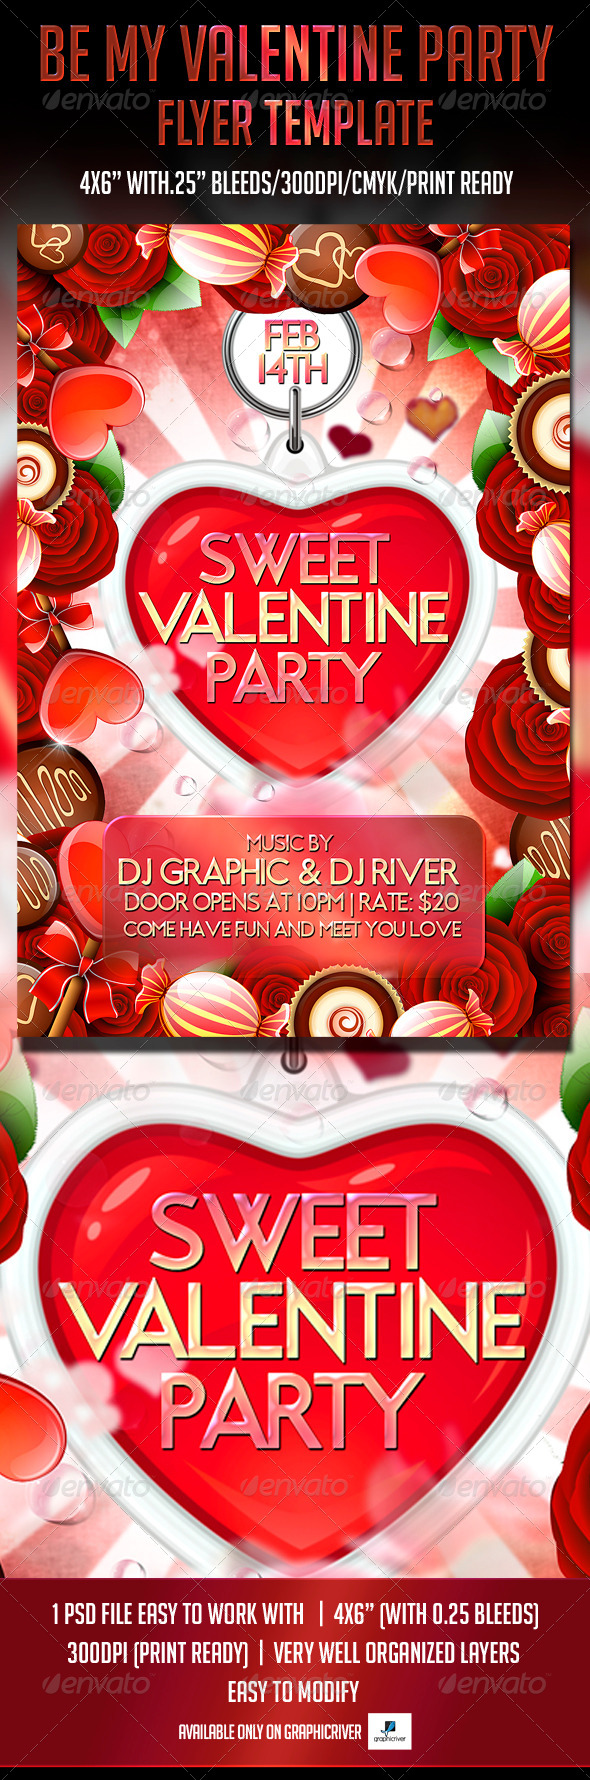 Sweet Valentine Party Flyer Template - Flyers Print Templates